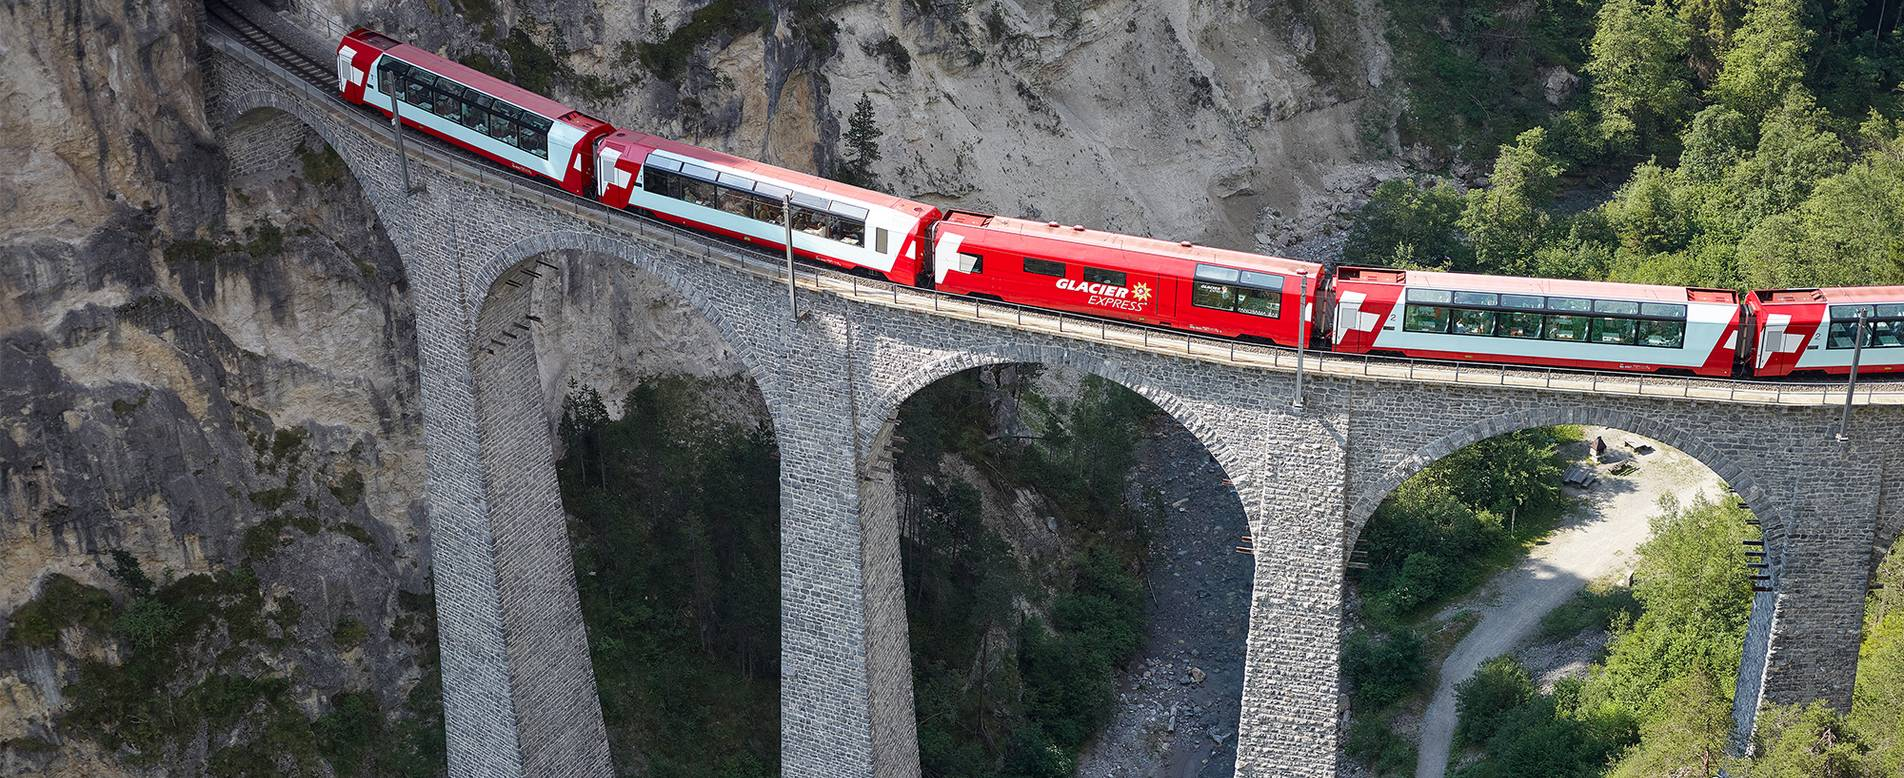 The glacier express is among The Most Scenic Train Trips in Europe